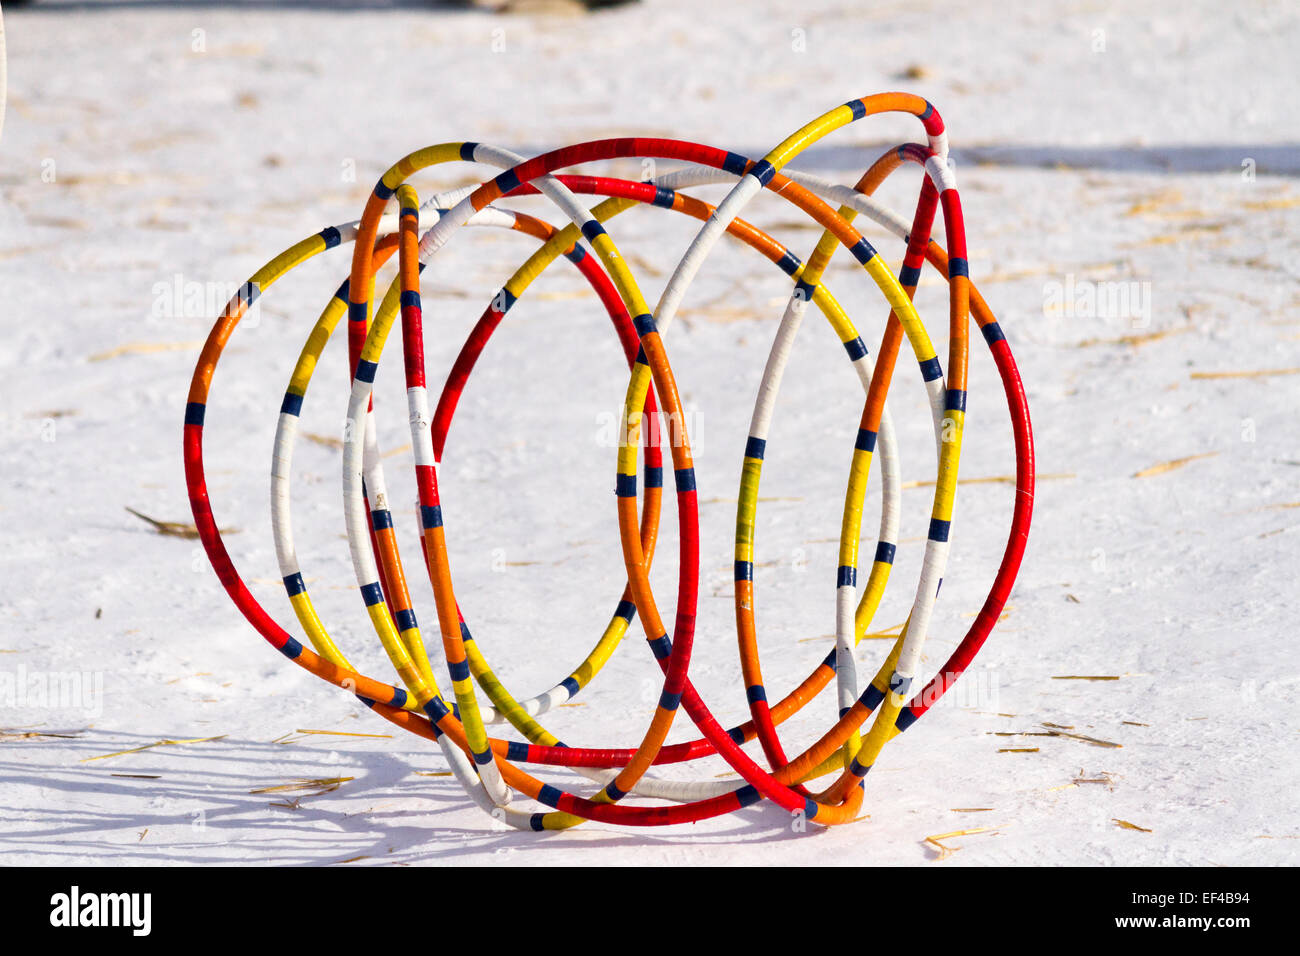 hoops-for-a-canadian-aboriginal-hoop-dan